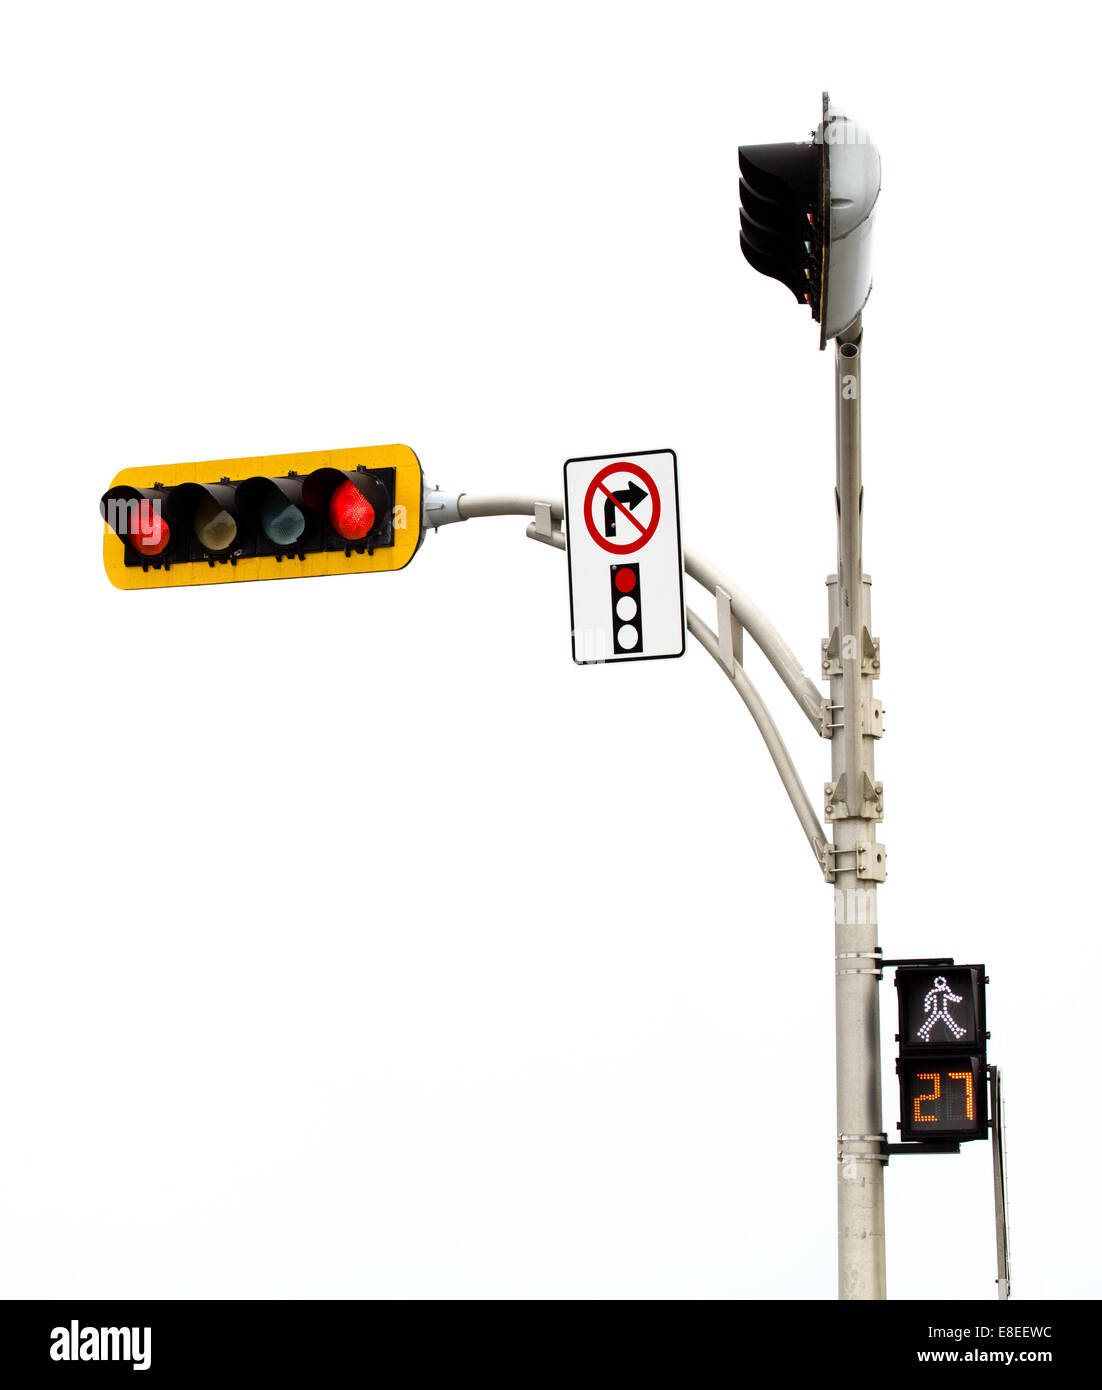 No Right Turn on red Light Intersection Isolated On White Background Stock Photo